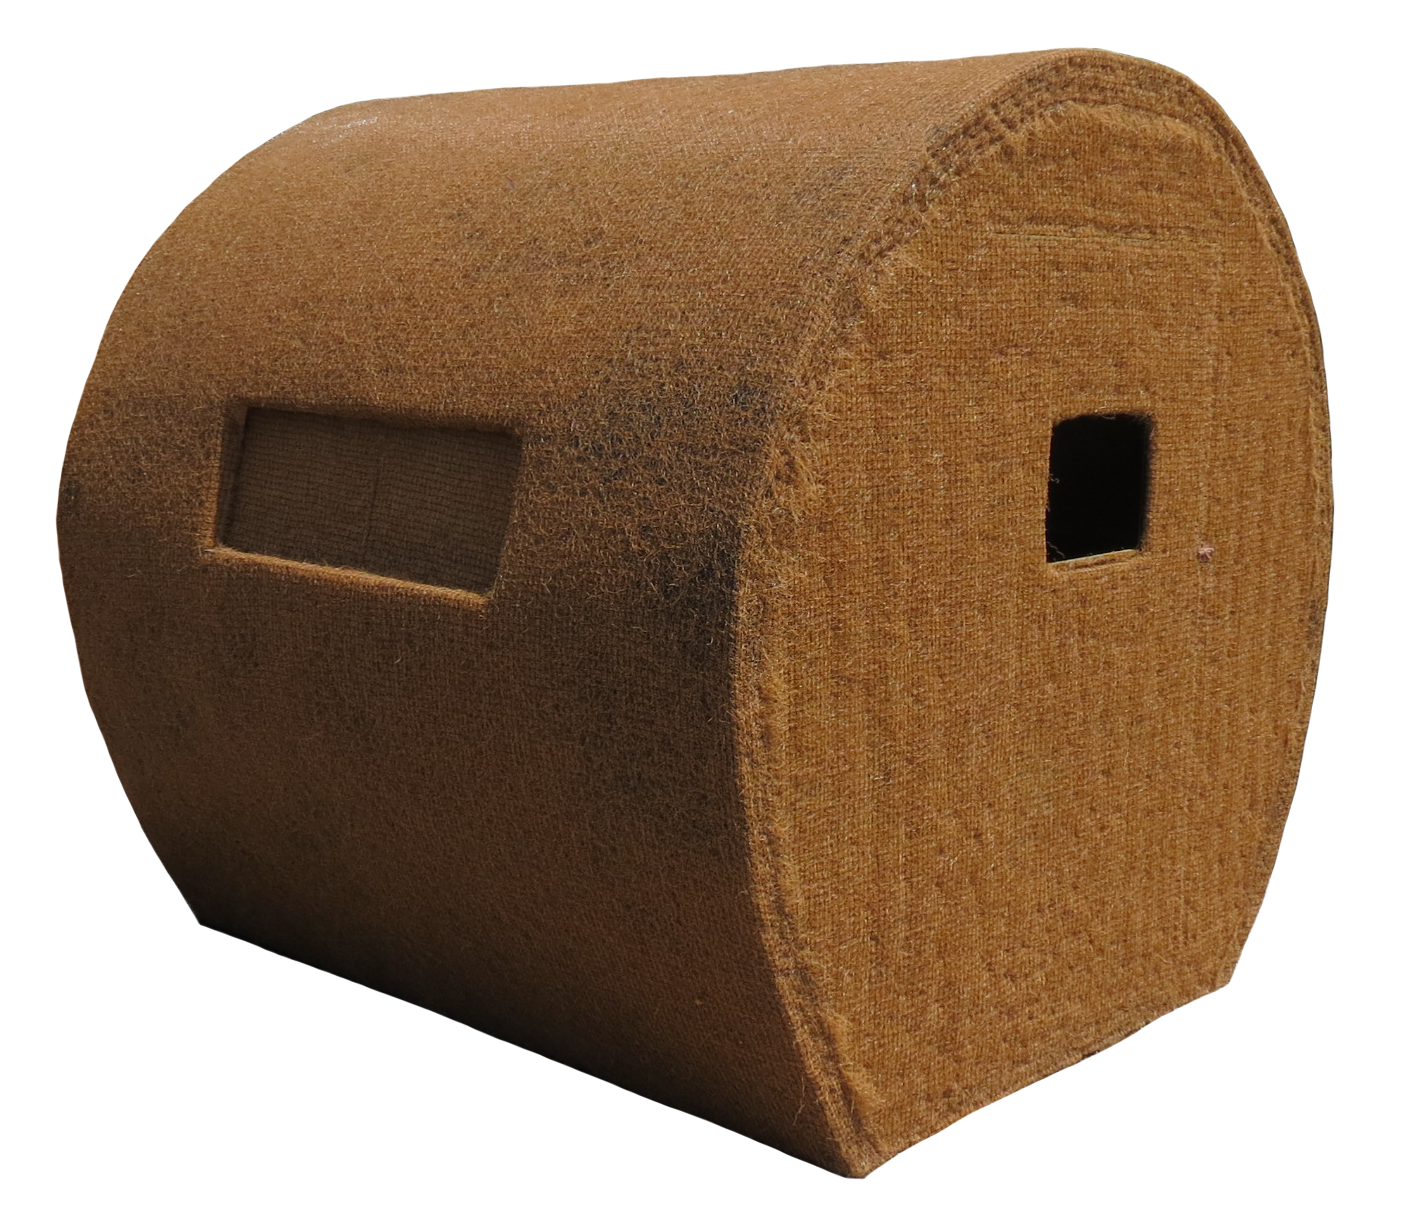 Marathon Haybale Blind - SOLD IN STORE ONLY